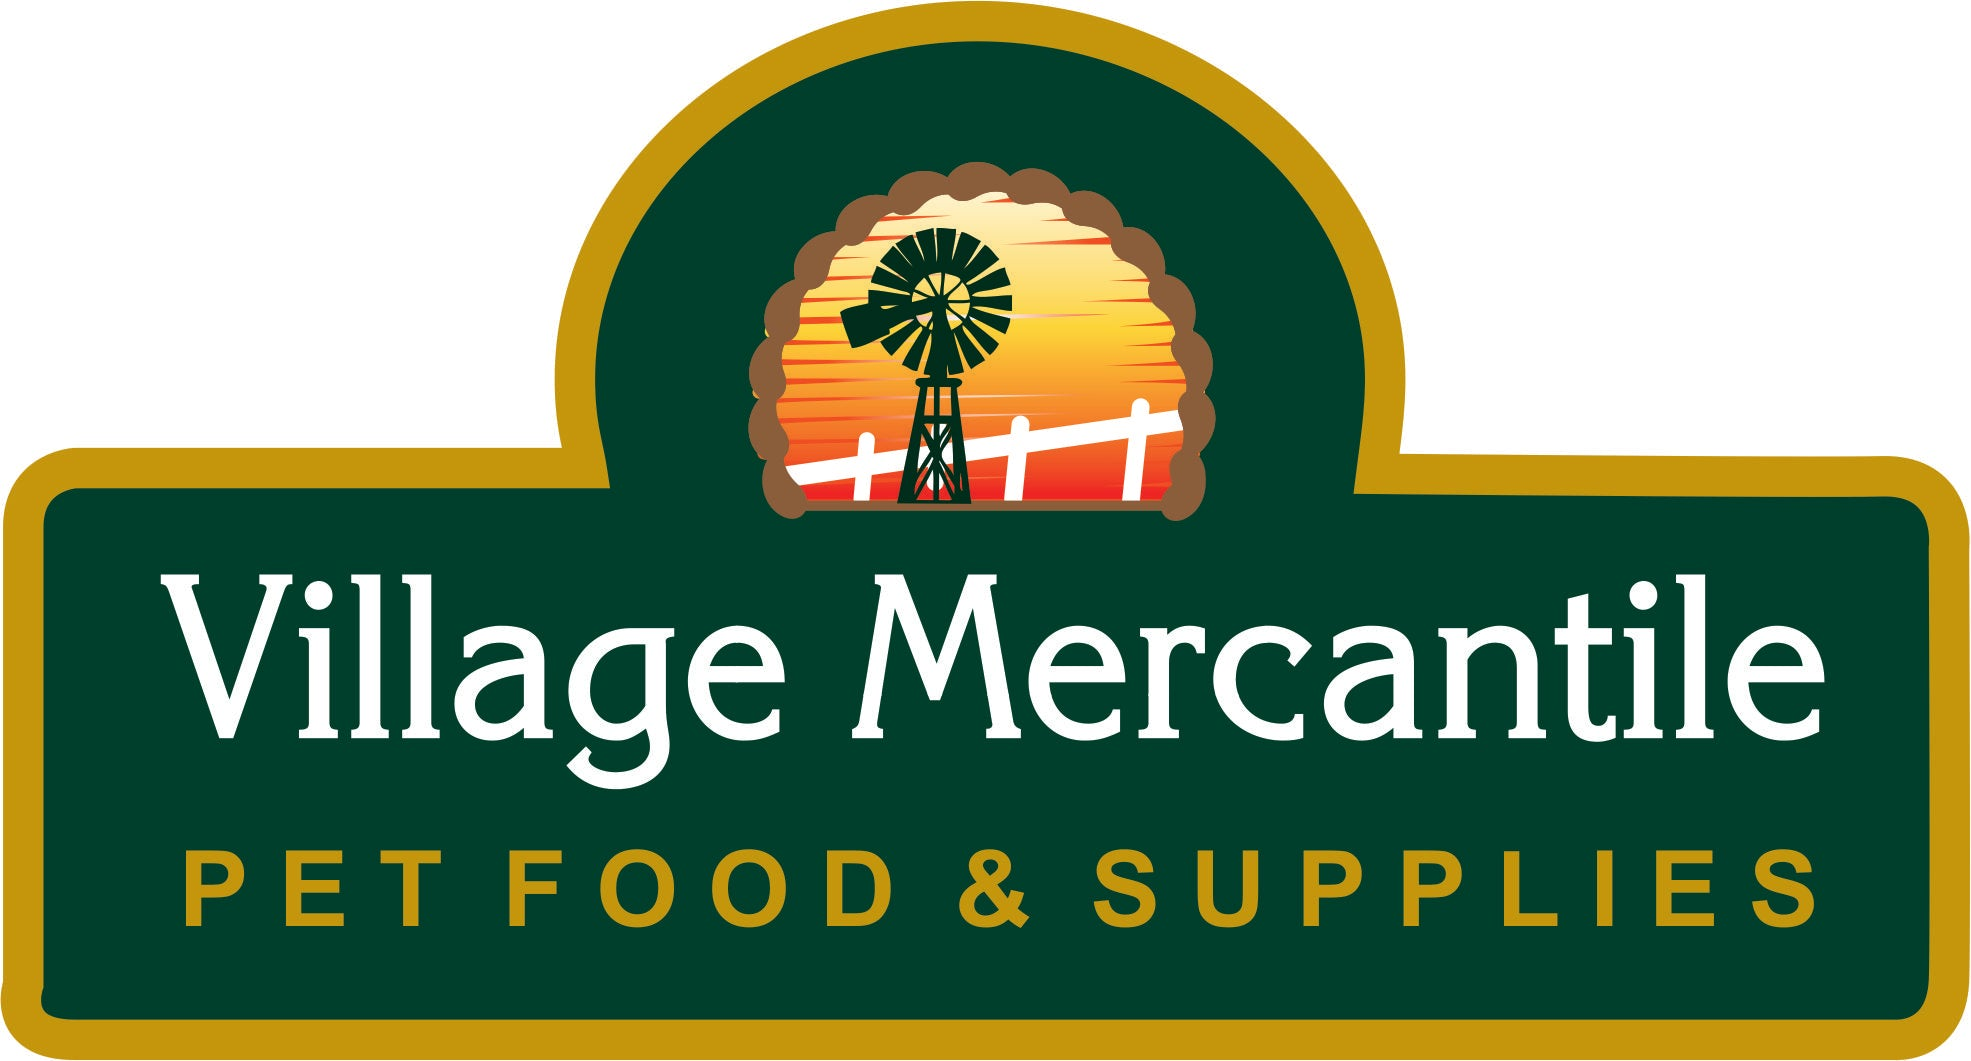 Village Mercantile Store